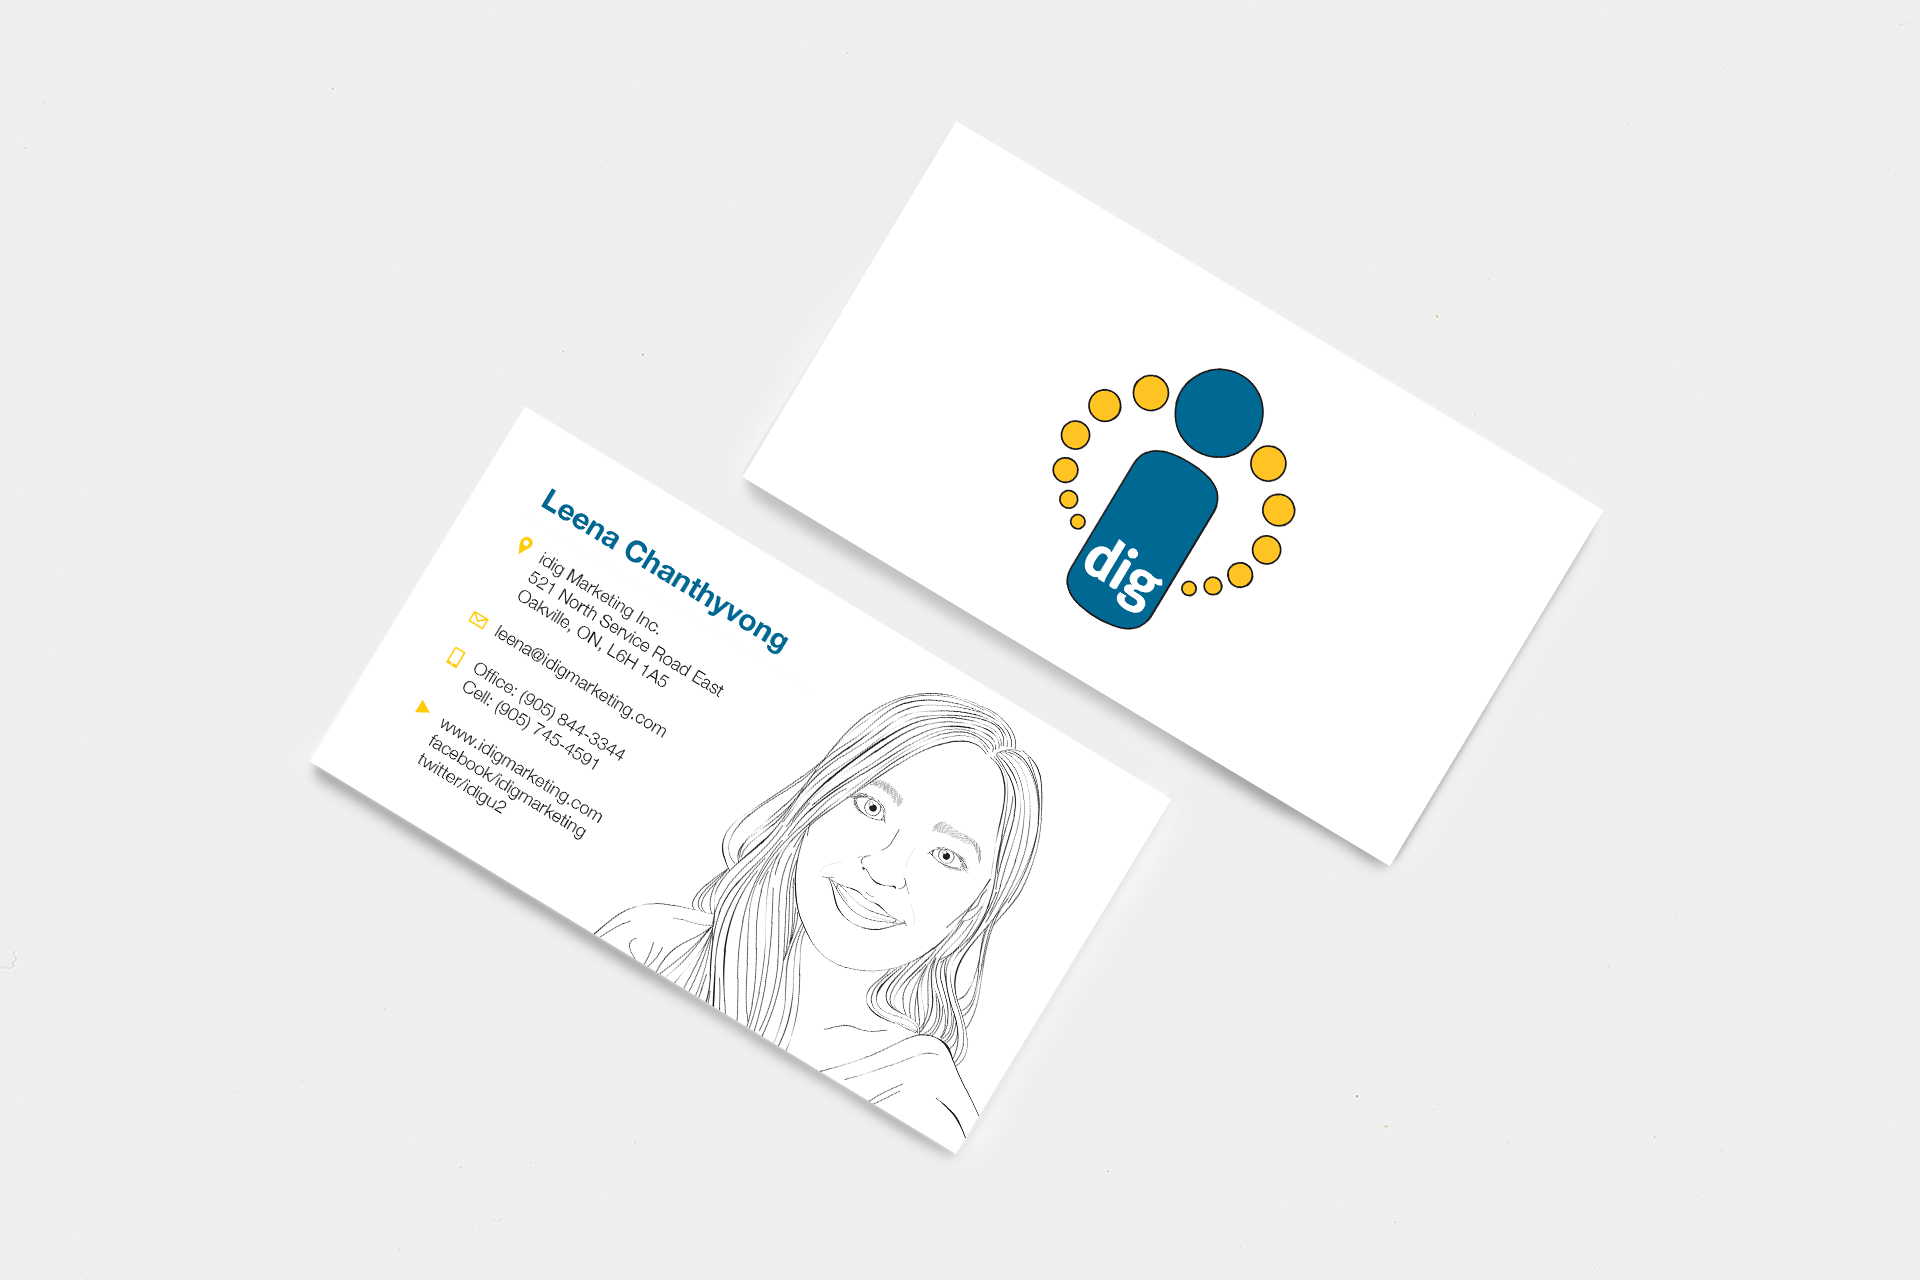 idig business cards — Leena Chanthyvong